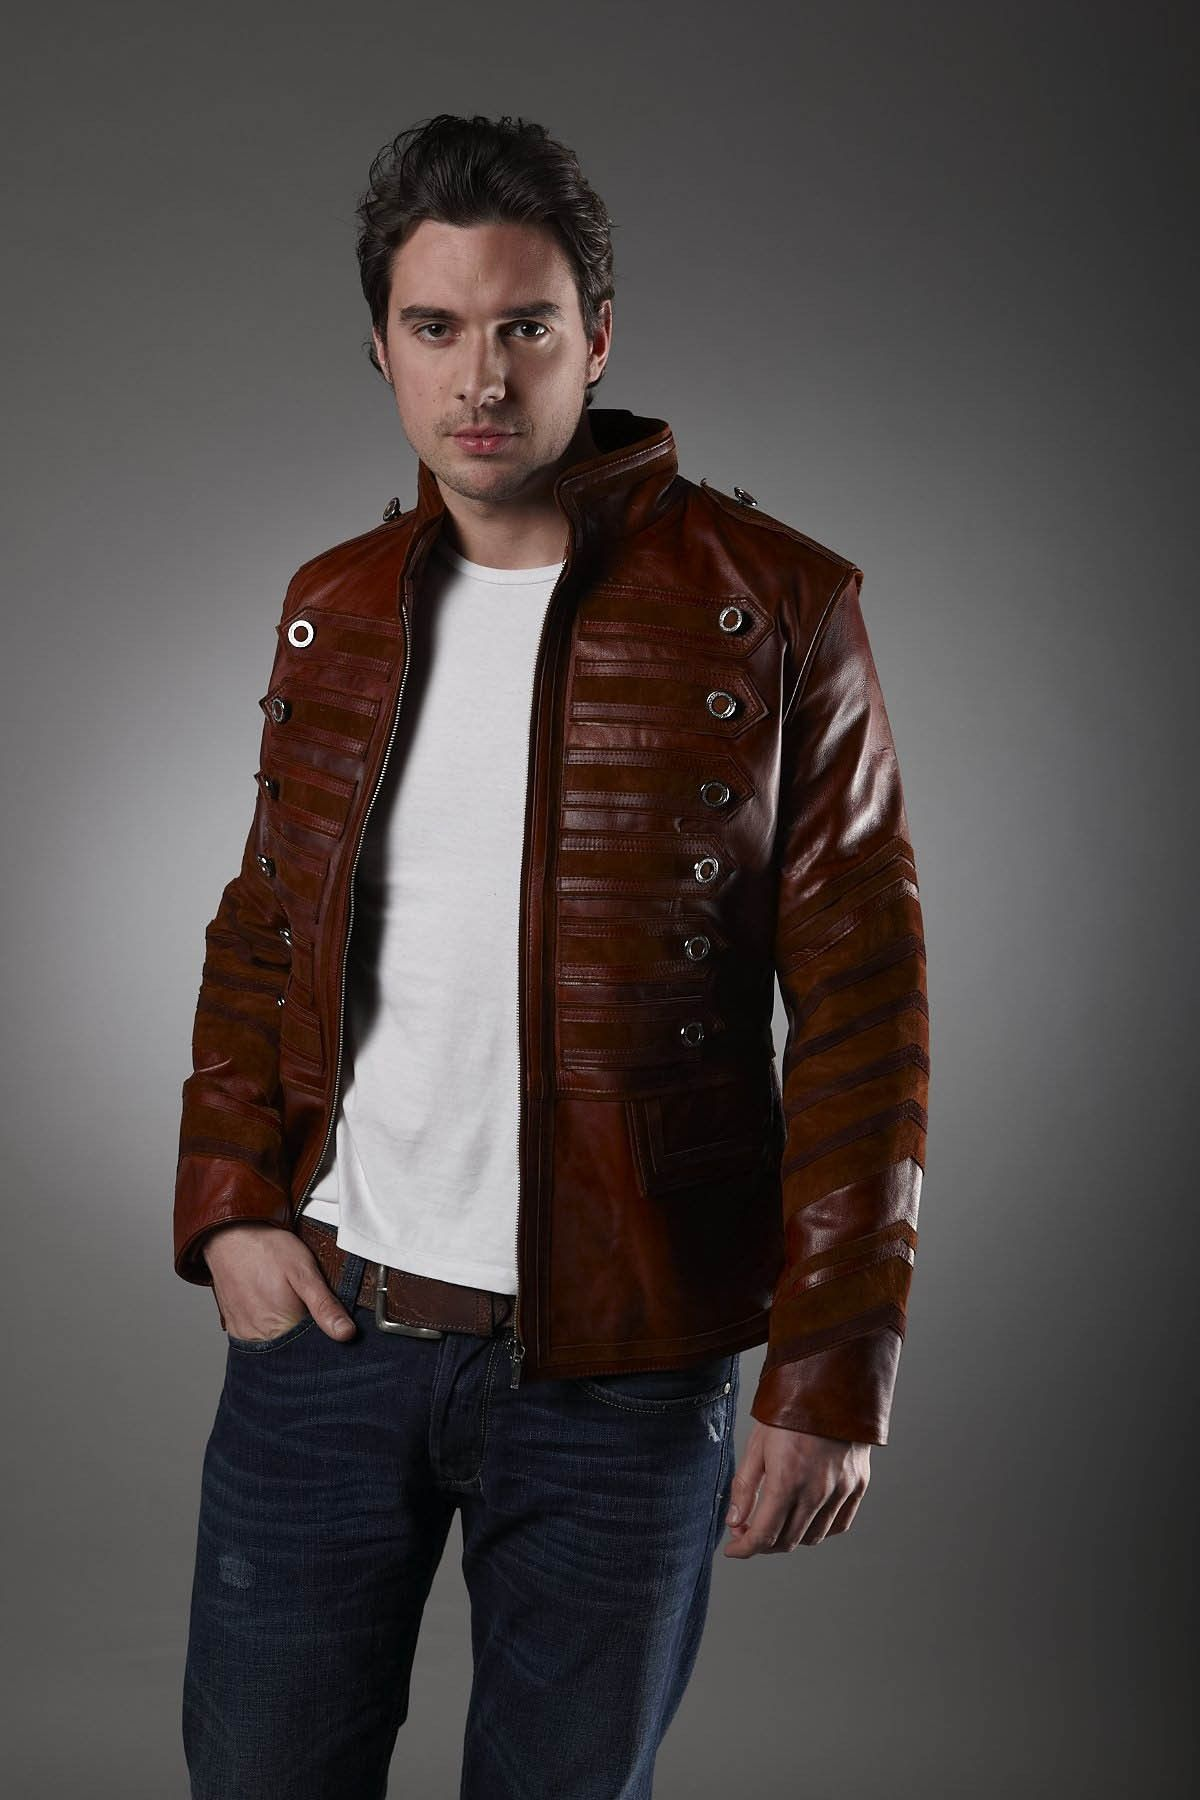 25 Best Leather Jackets For Men | Leather jackets, Men's jacket ...